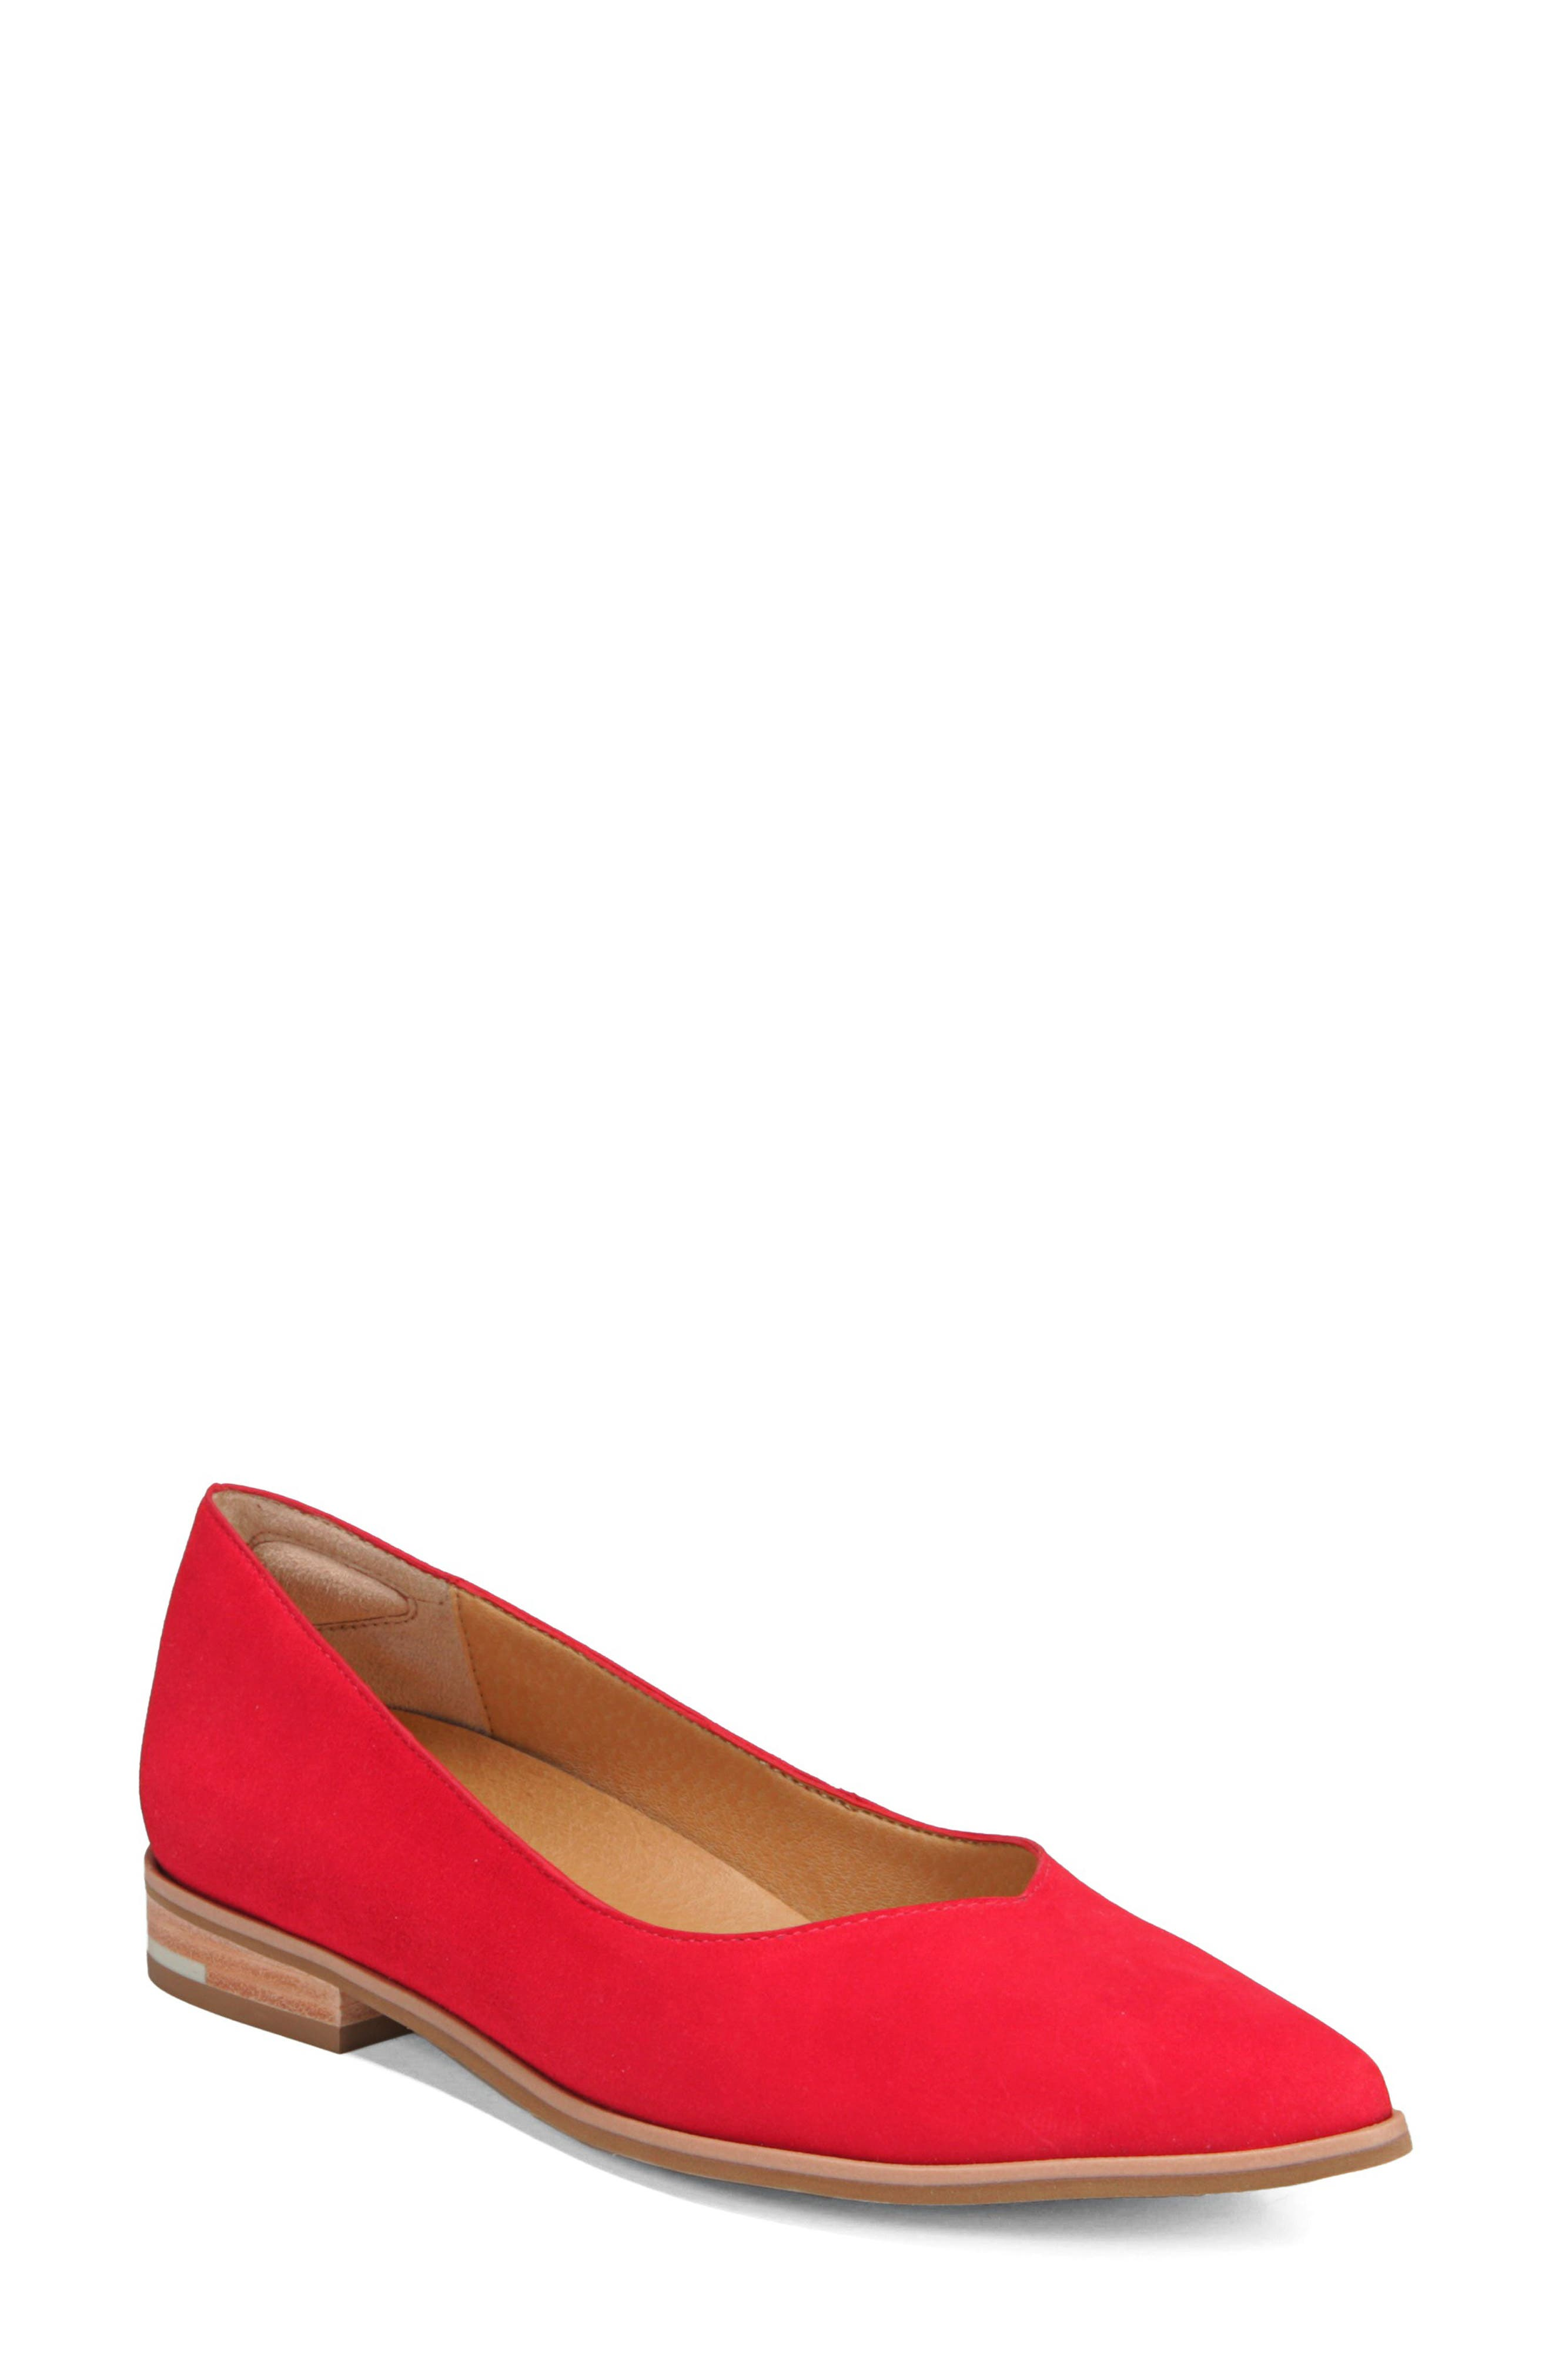 Dr. Scholls Flair Flat, Main, color, RED LEATHER